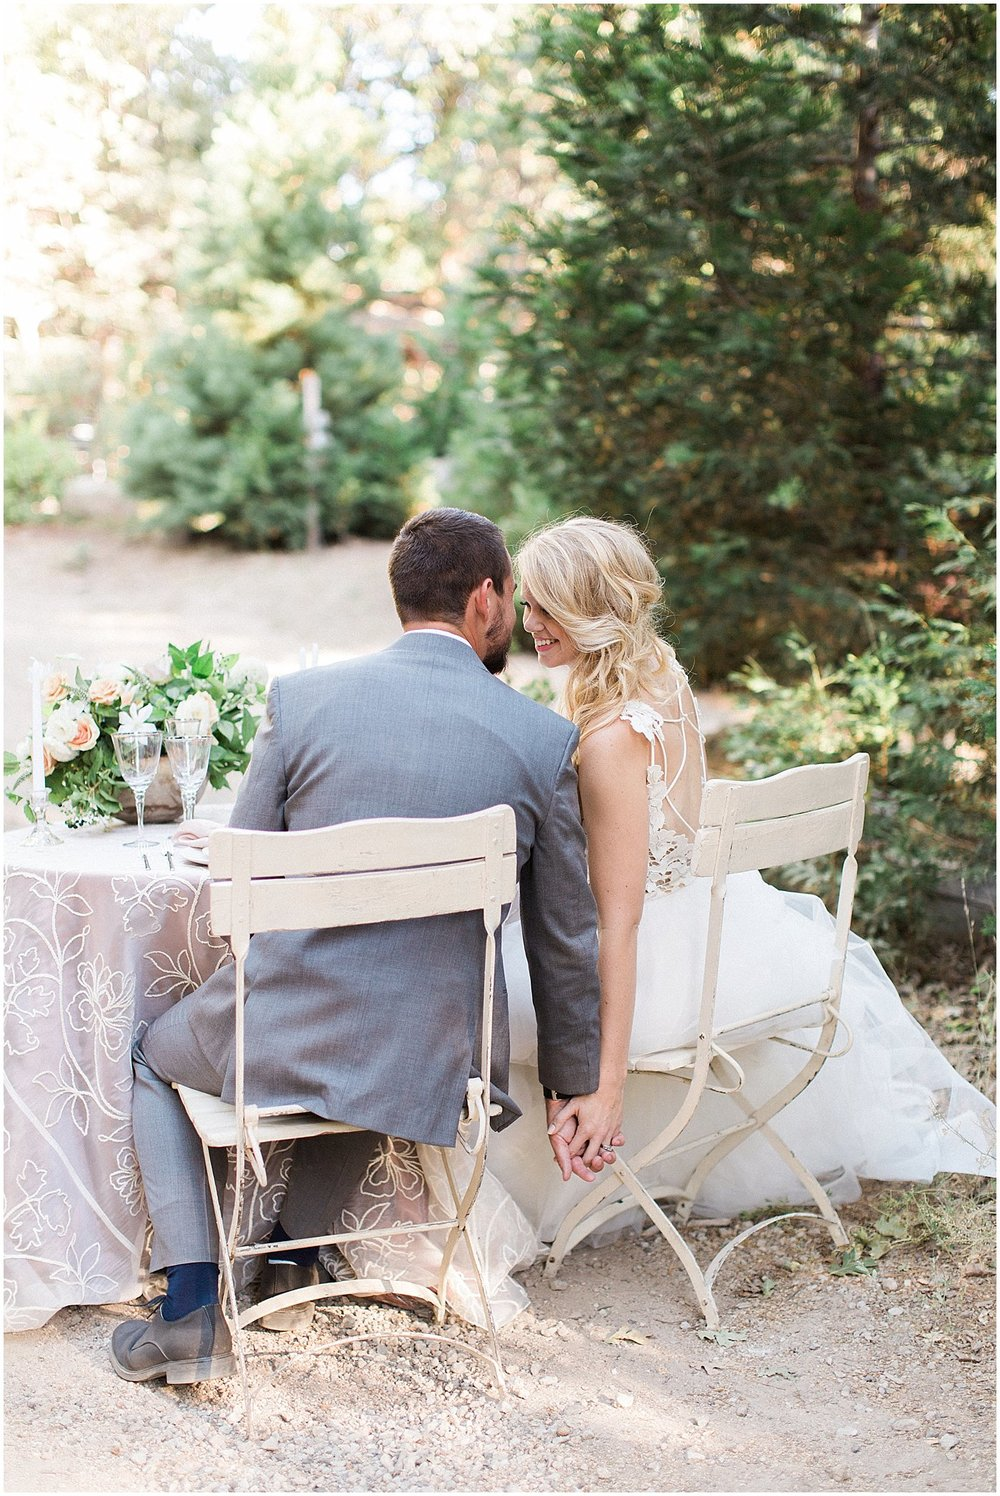 Romantic Bride & Groom Sweetheart Table featured on Style Me Pretty | Phoenix Wedding Planner | Megan Dileen Events